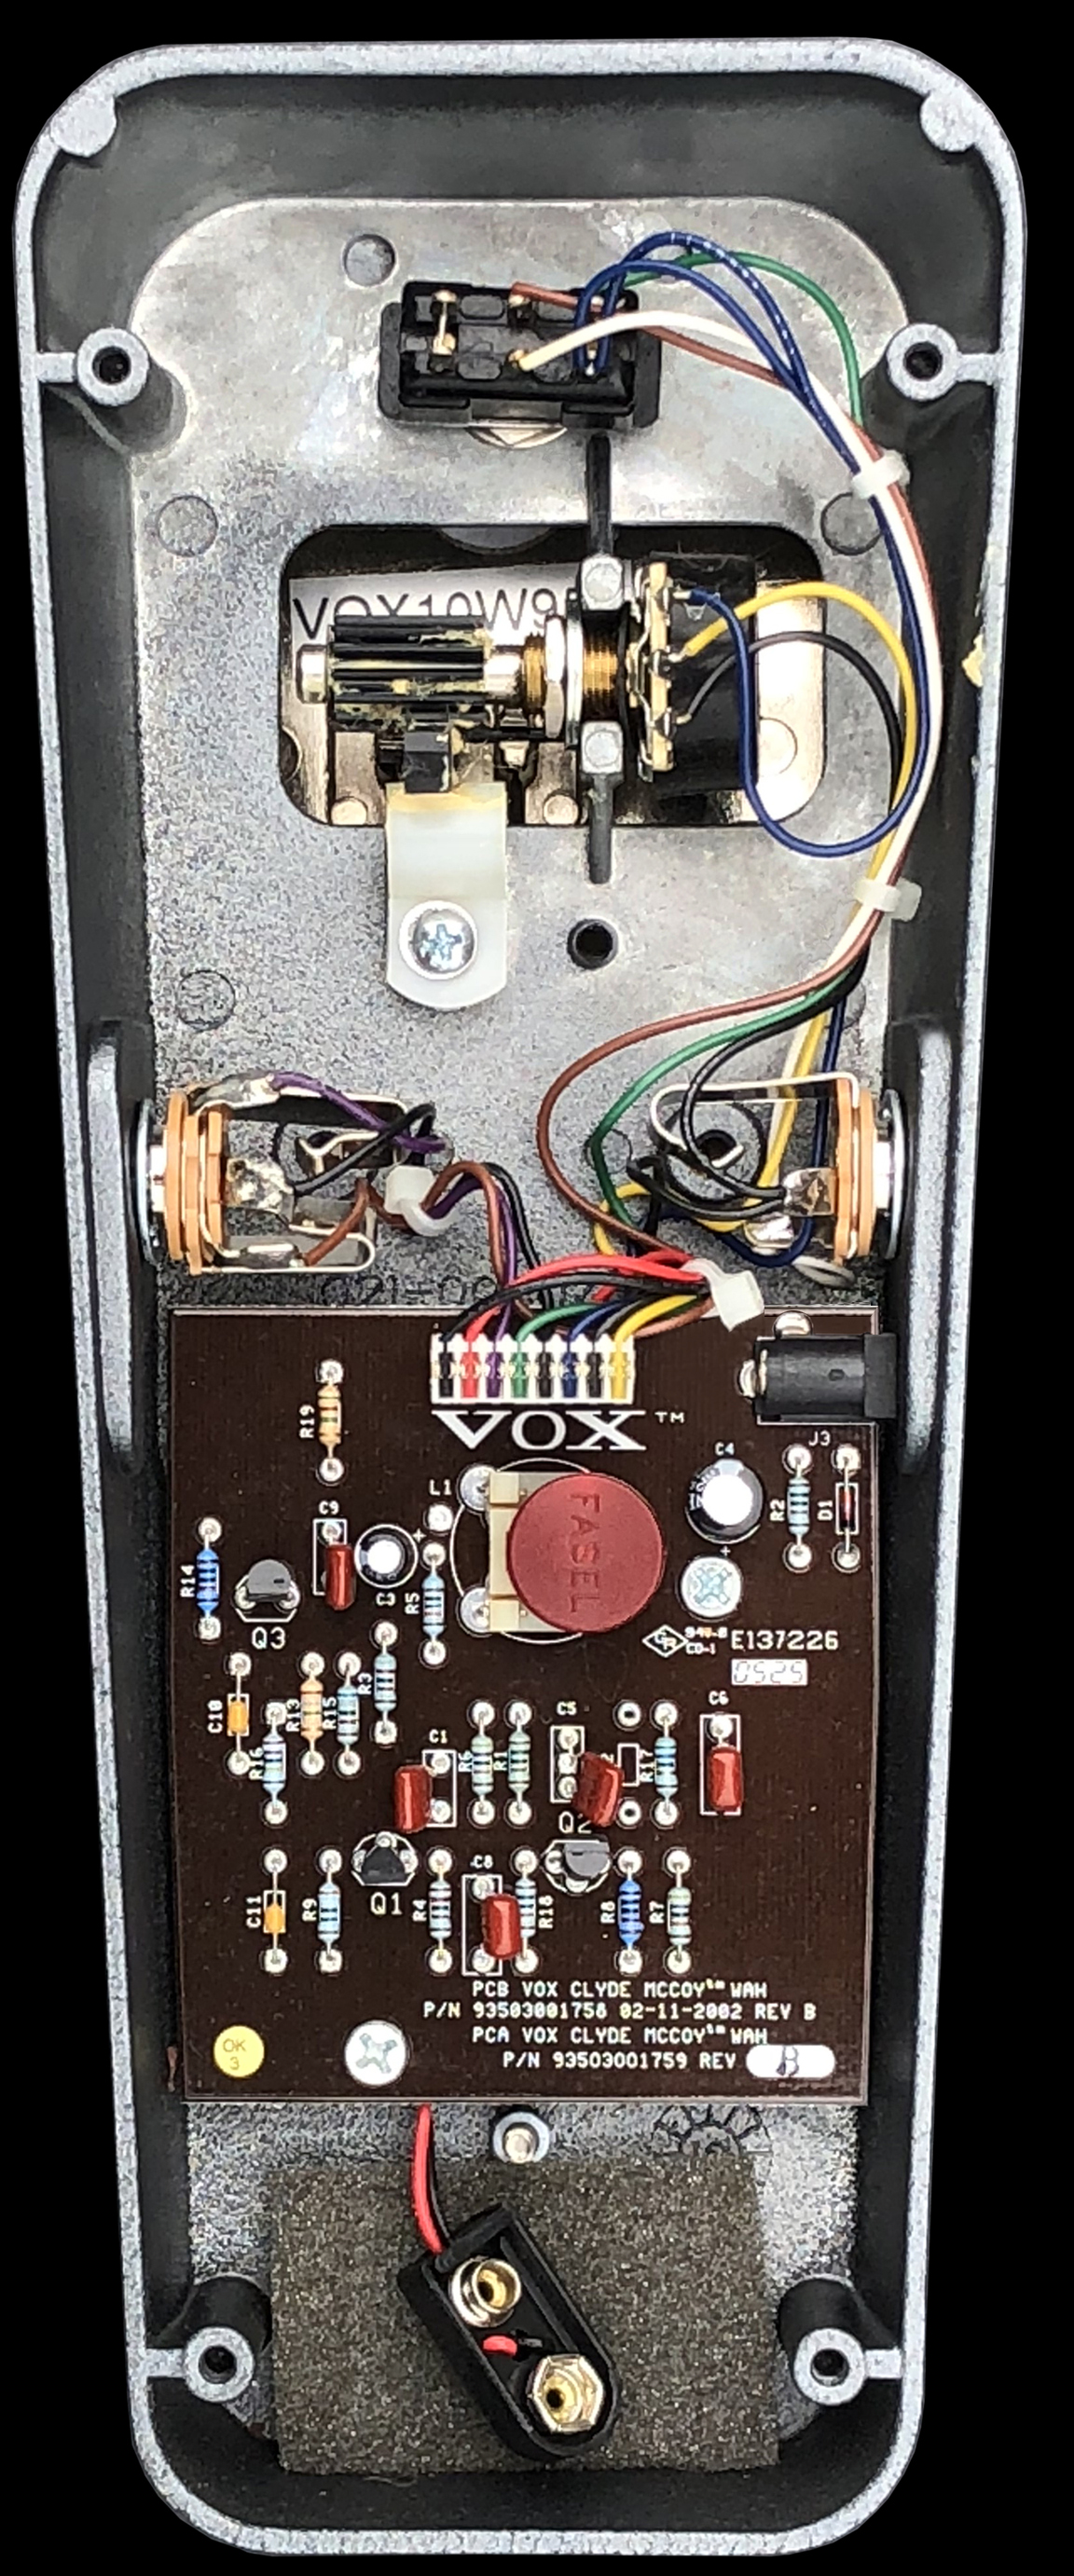 The Vox Showroom V848 Clyde Mccoy Wah Pedal 2002 2004 Circuit Created Worlds First While Designing A Device Using Variable Version Of Mrb Mid Range Boost Made Famous In Their